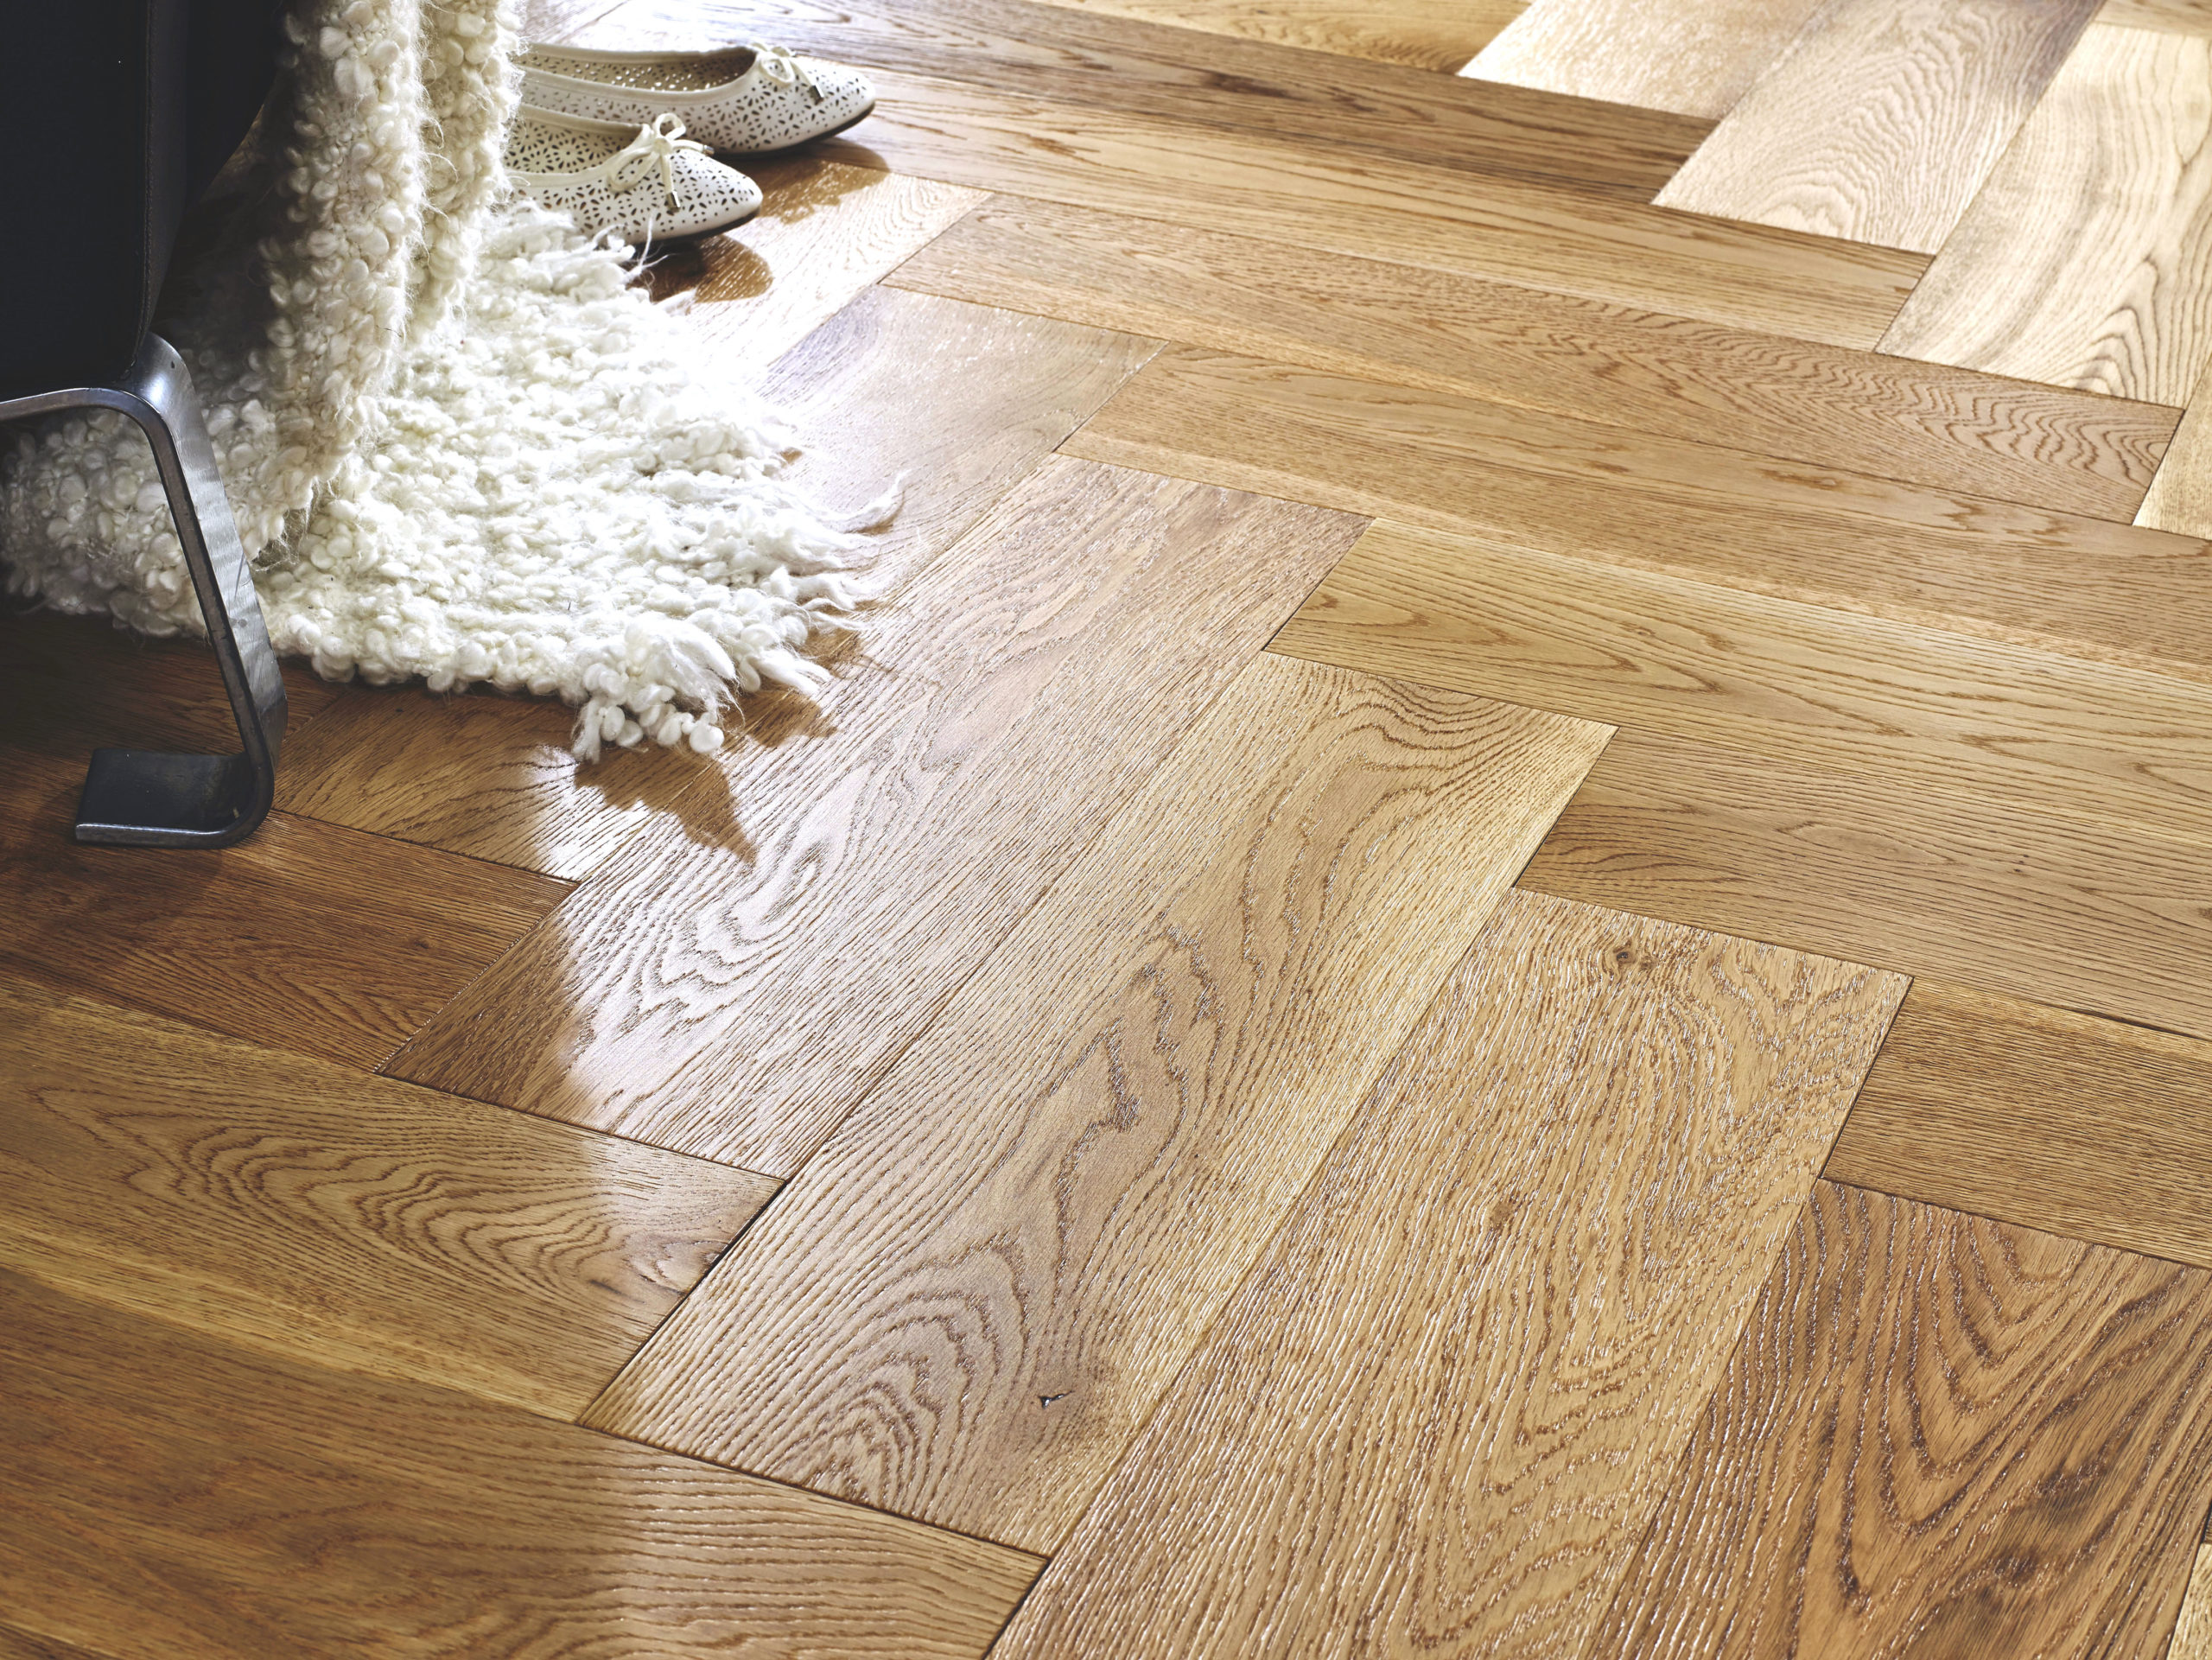 Riviera Herringbone Click 14/3 x 150mm Natural Oak Engineered Wood